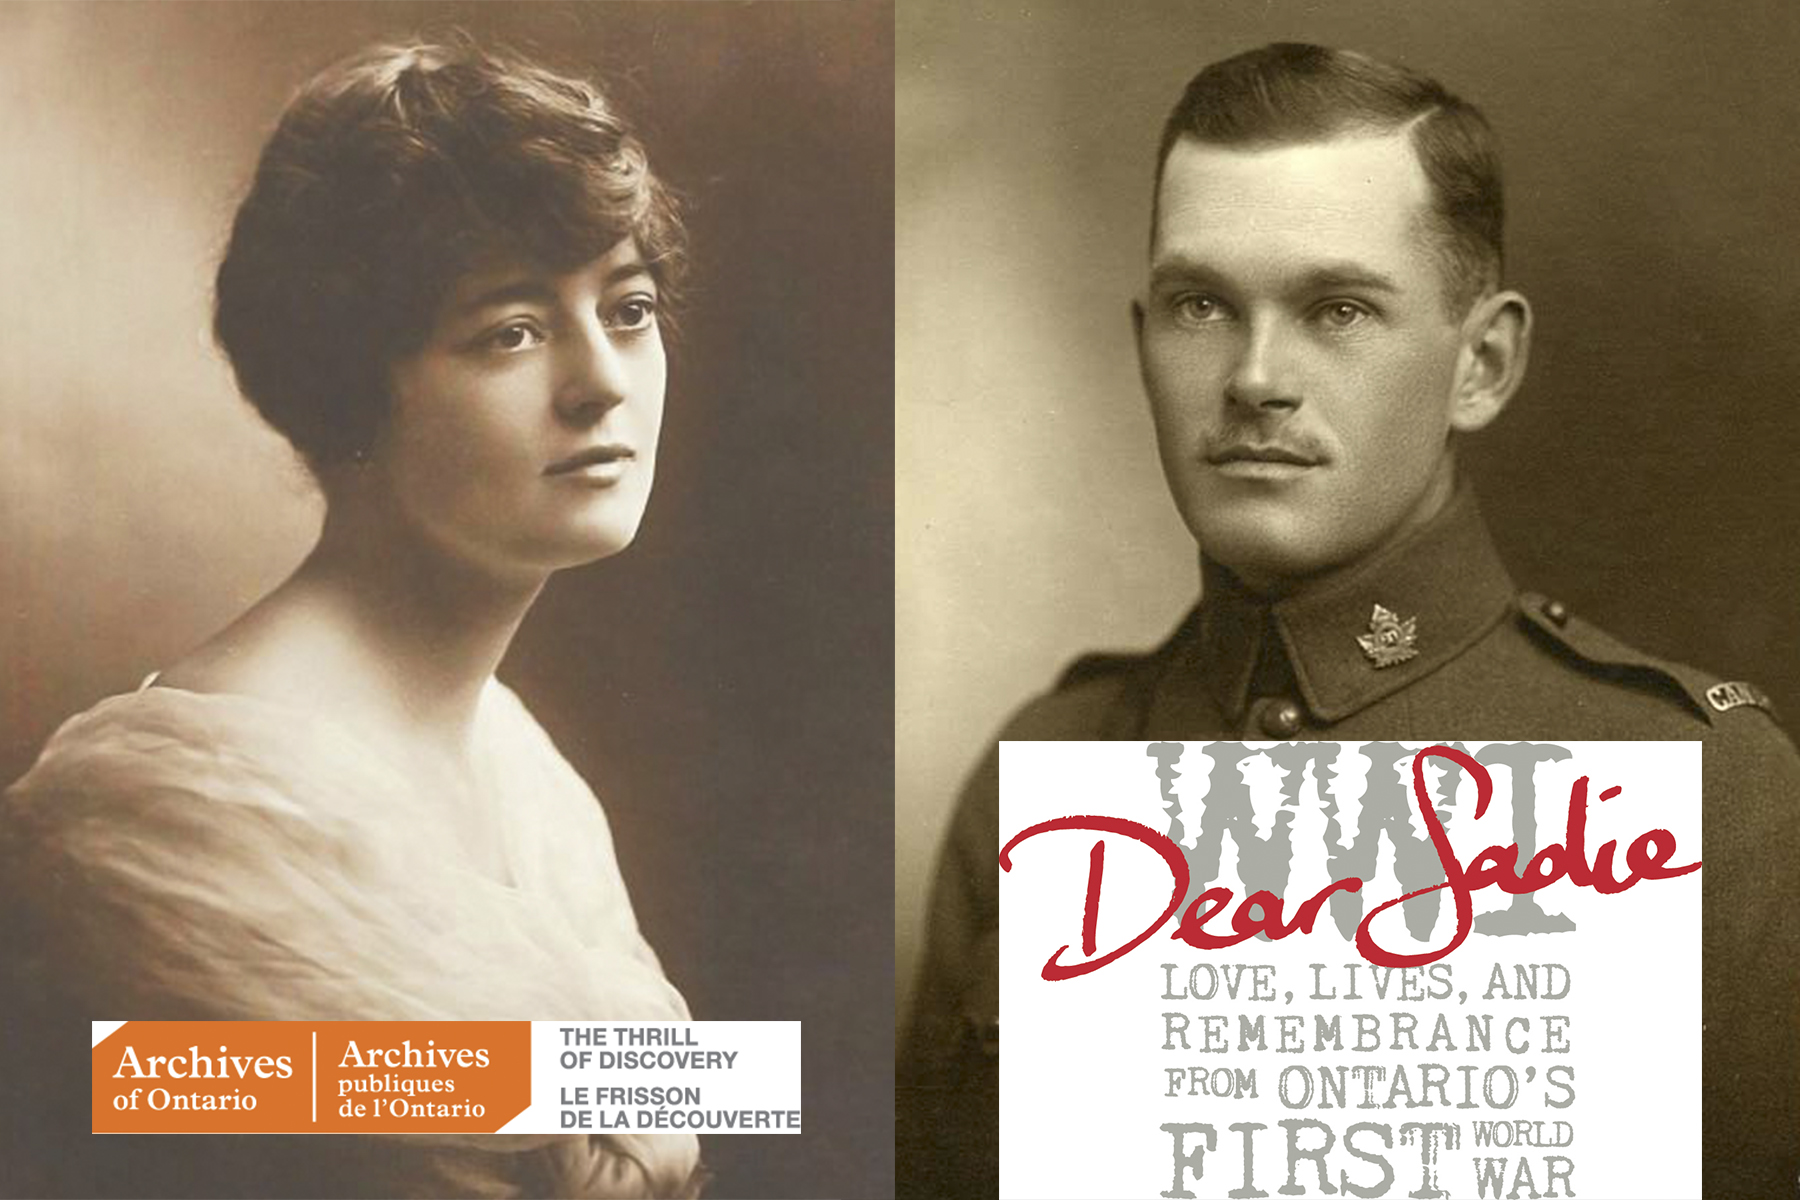 photo of a soldier and a young lady